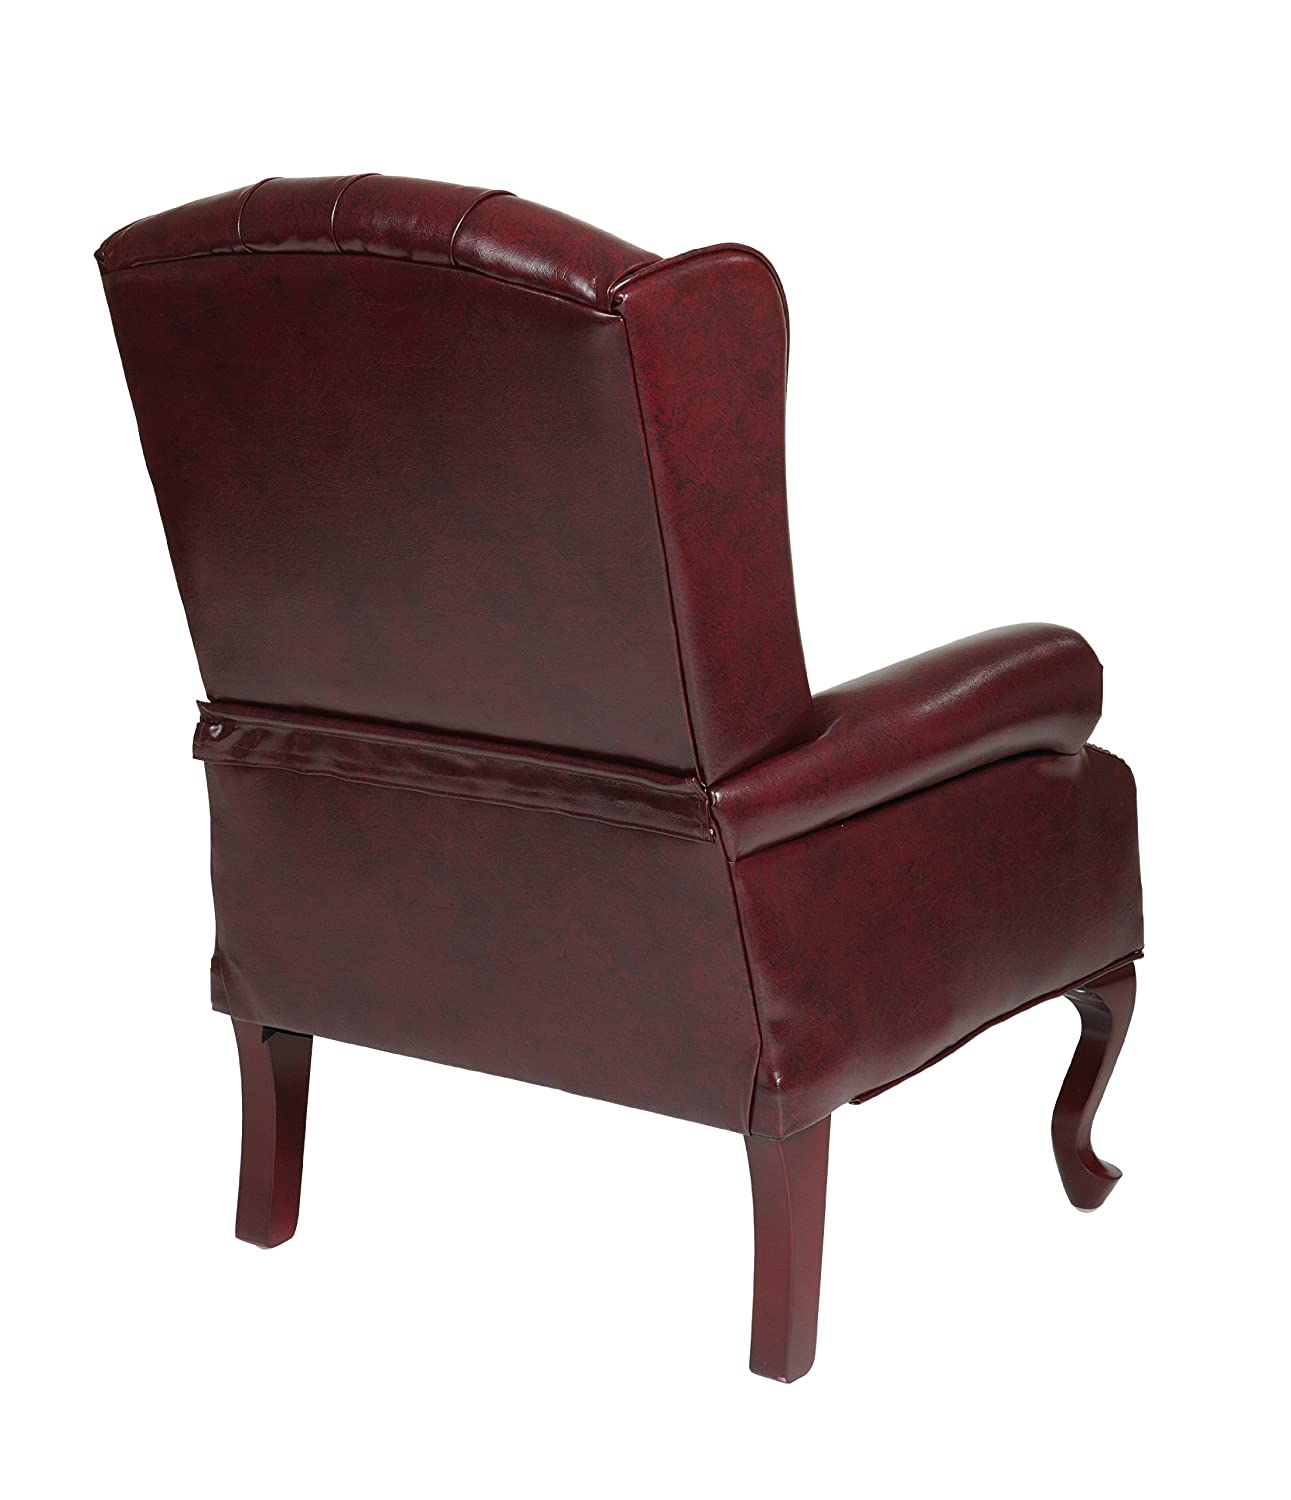 Amazon fice Star Traditional Queen Anne Style Vinyl Chair